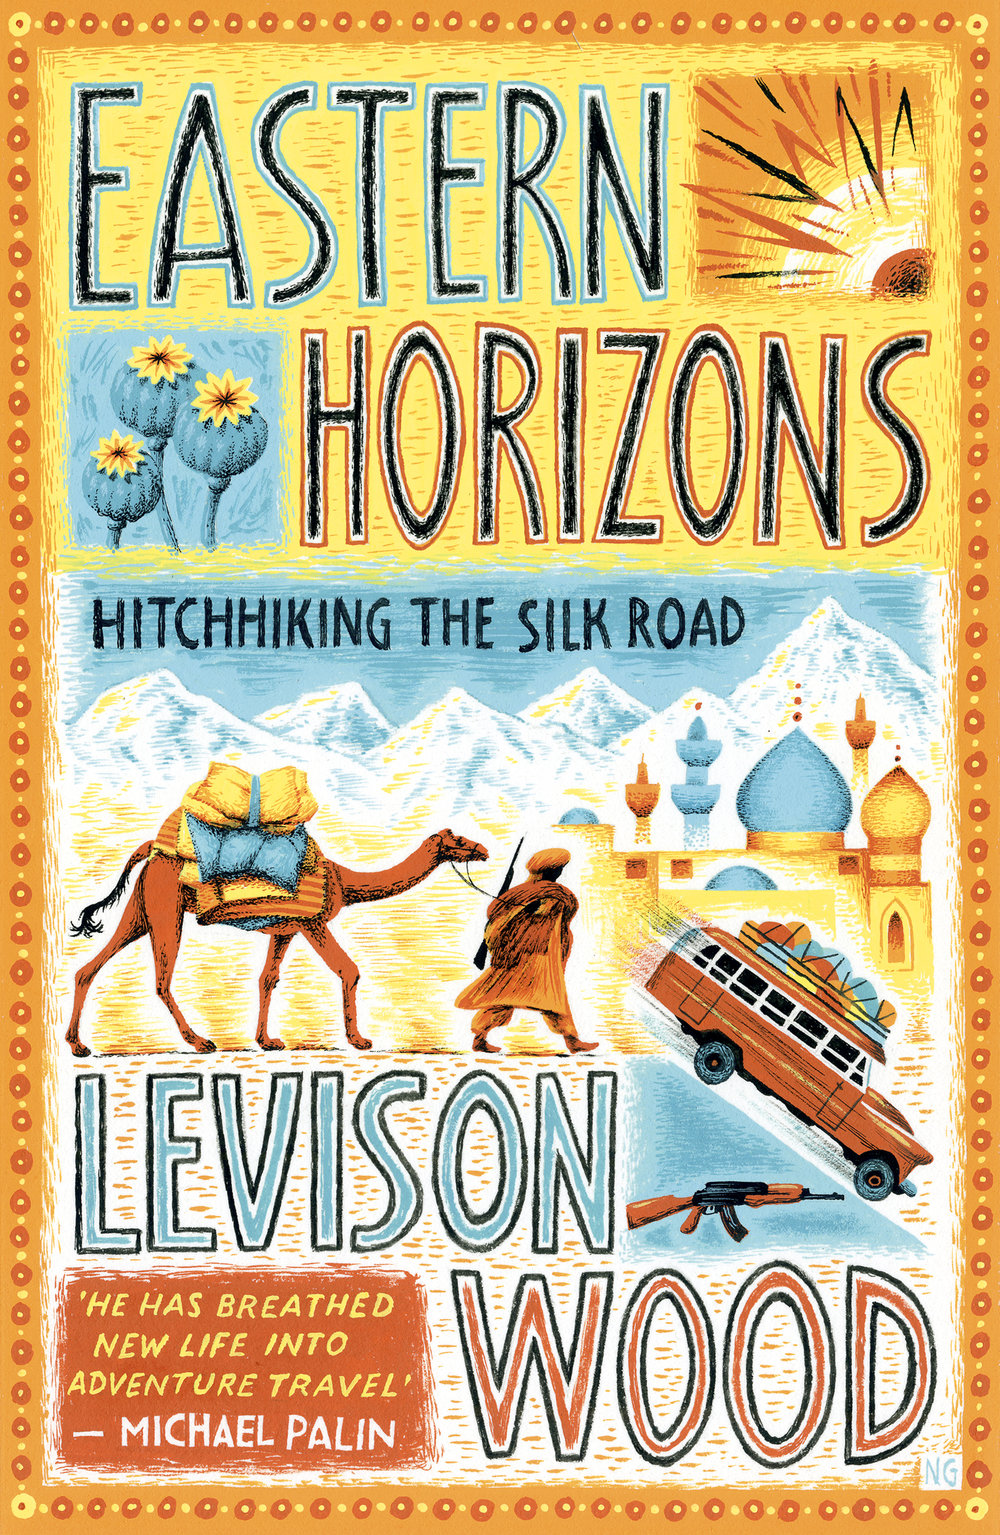 Eastern Horizons will be published by Hodder & Stoughton on November 2nd 2017. Available to pre-order here.